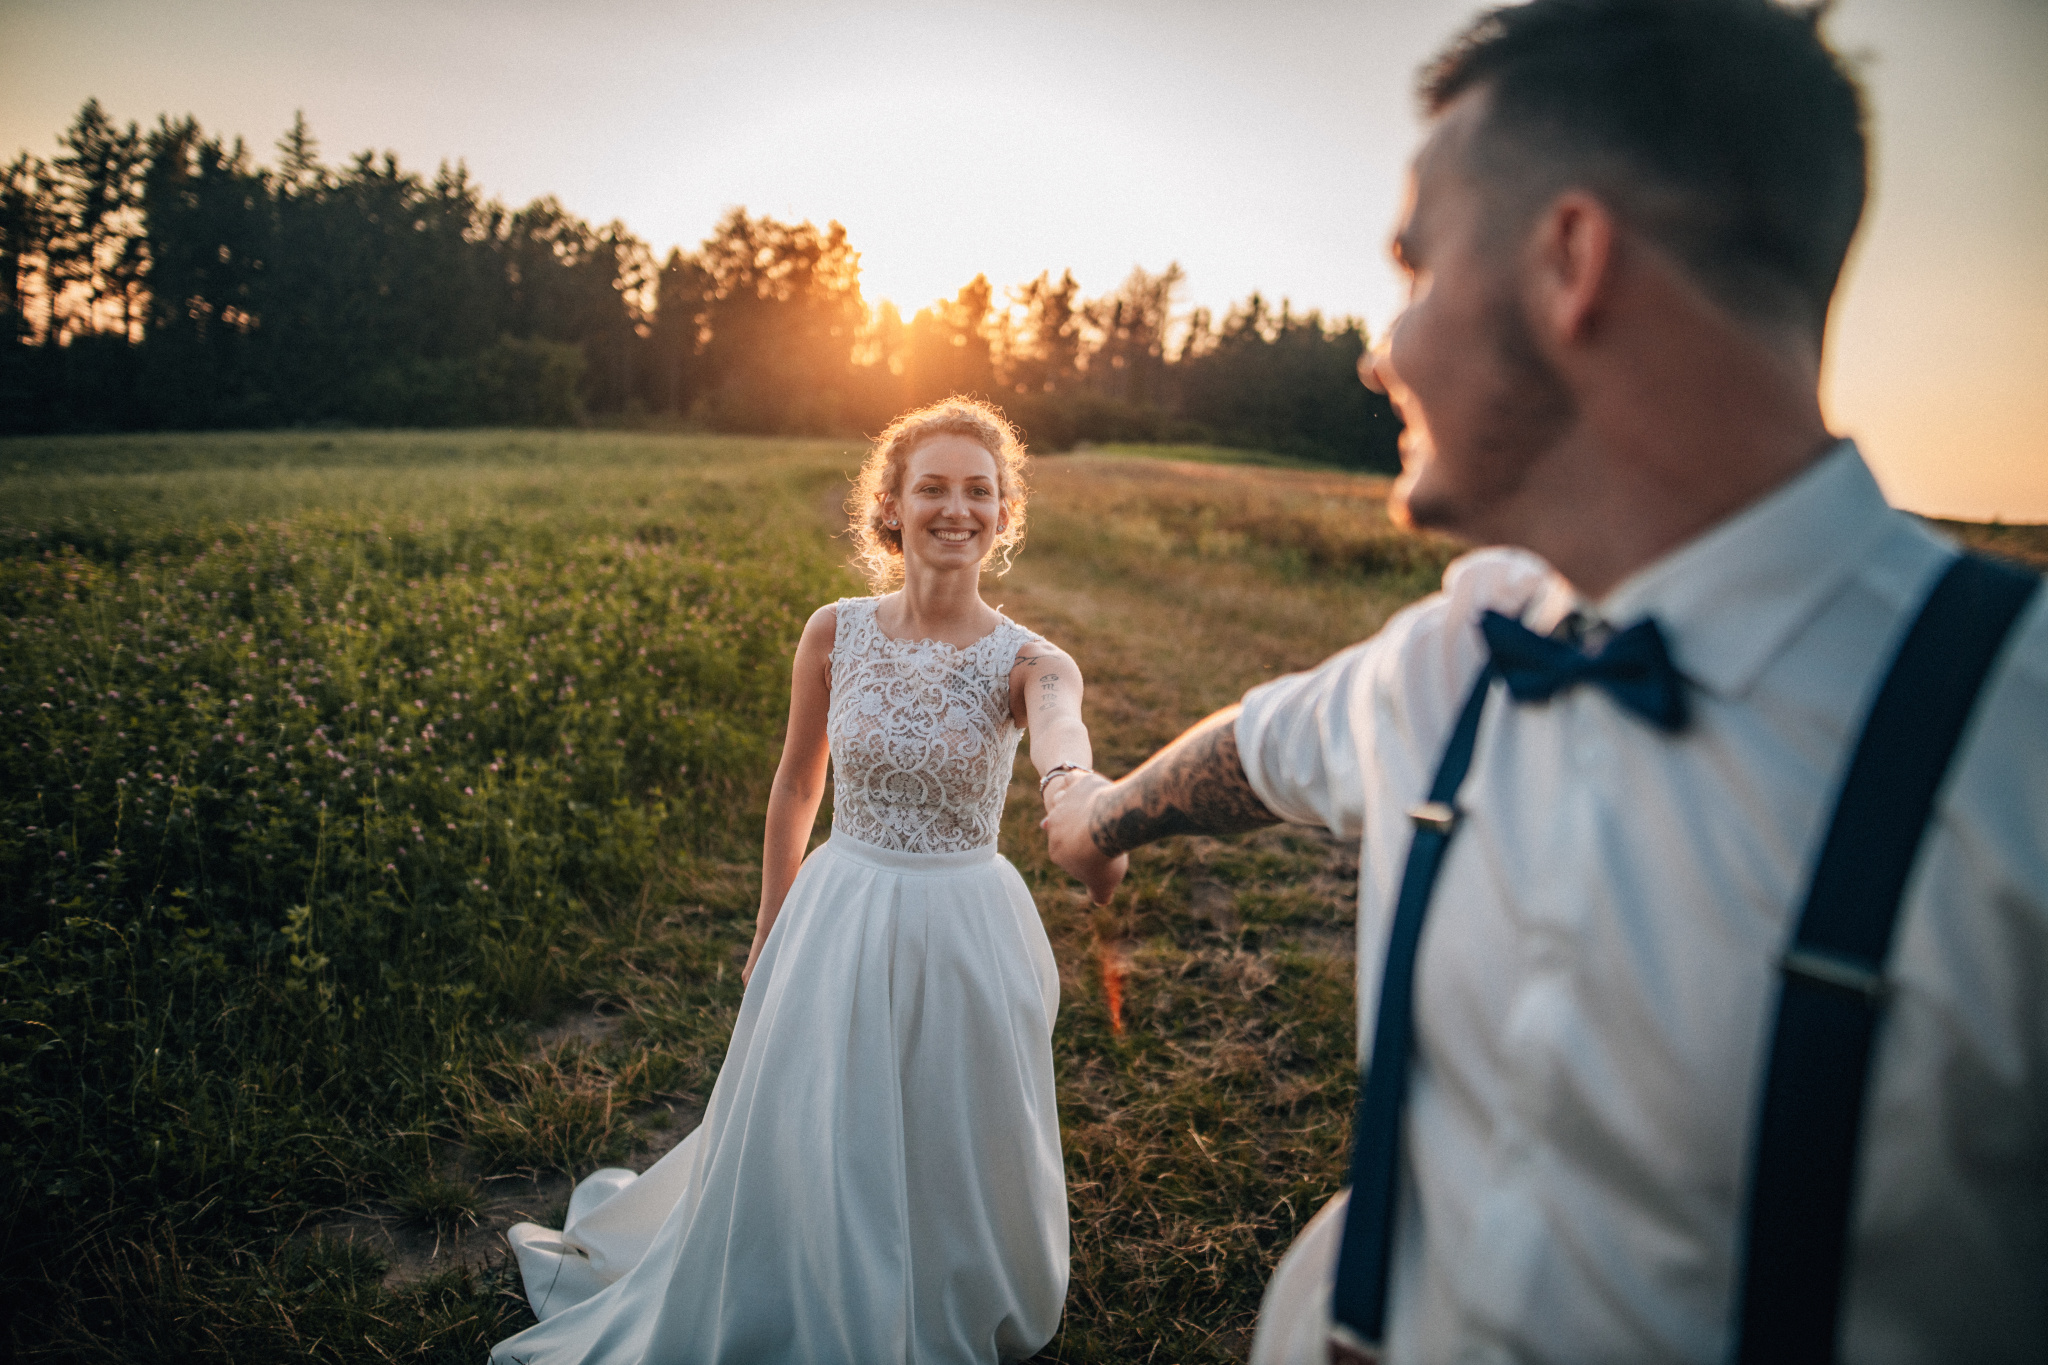 We stand the wedding time still for you forever - SVATBER wedding photography and video